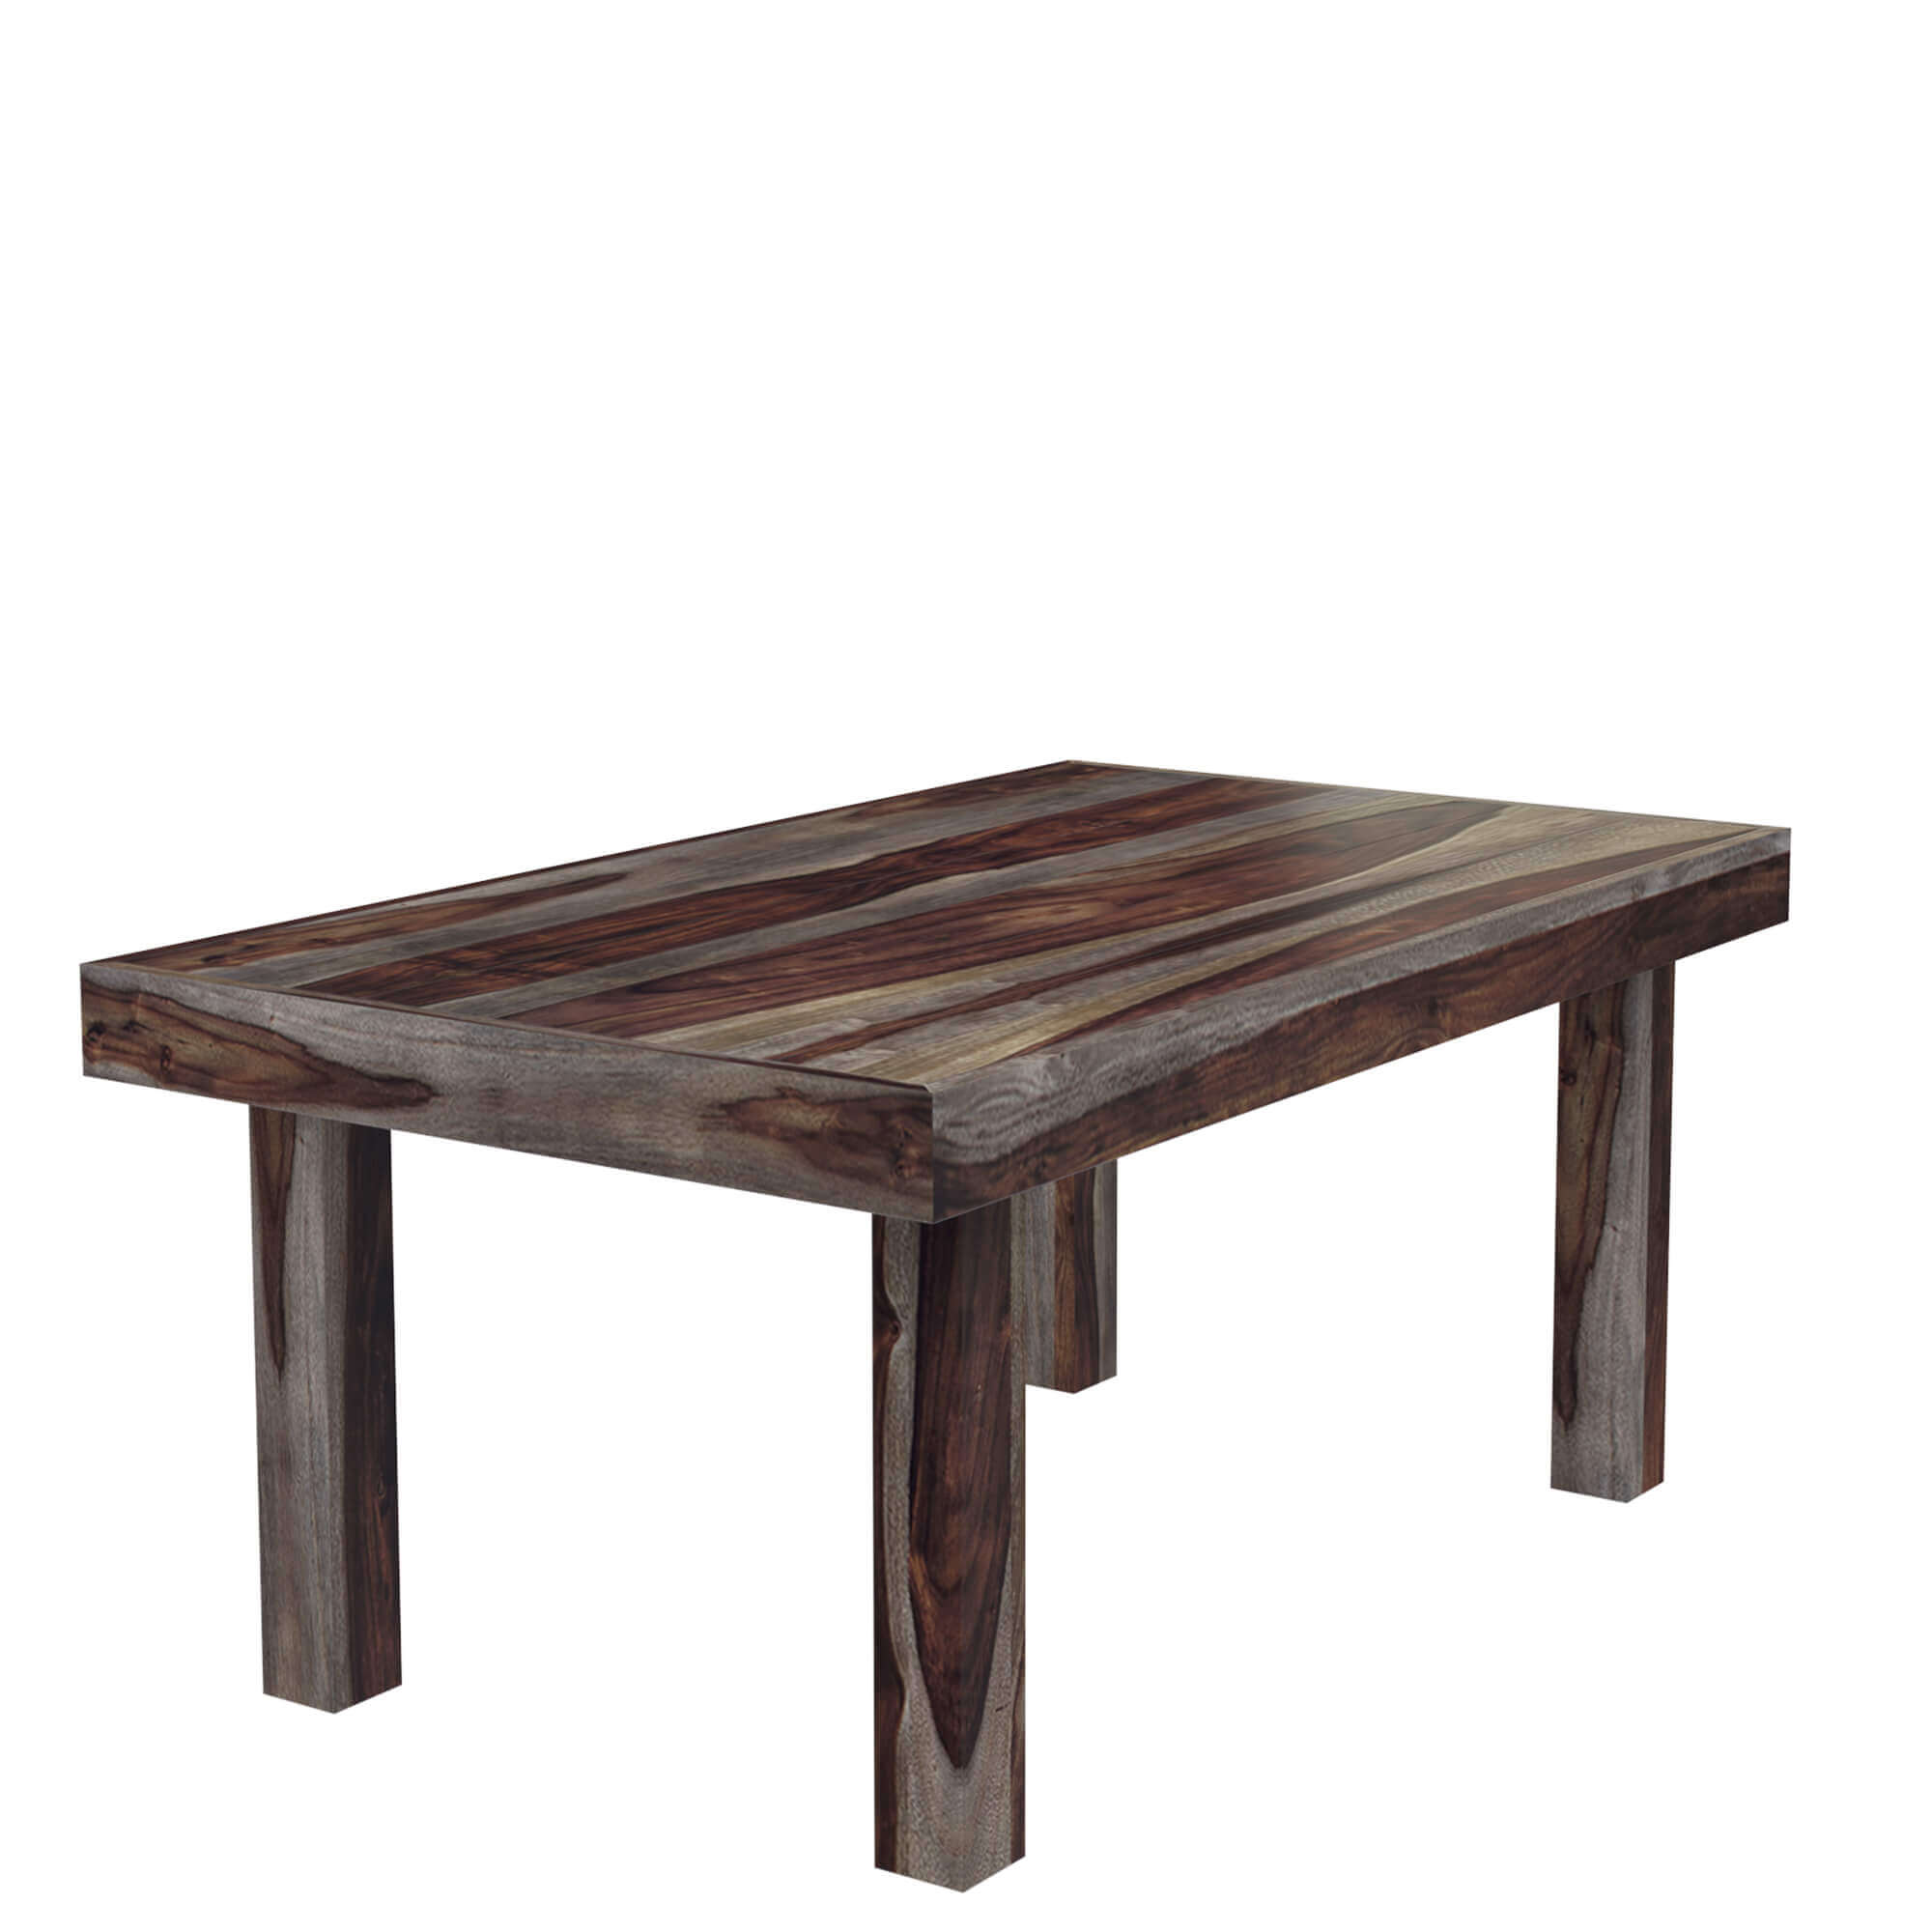 Rustic Wooden Dining Tables ~ Frisco modern solid wood rectangular rustic dining room table